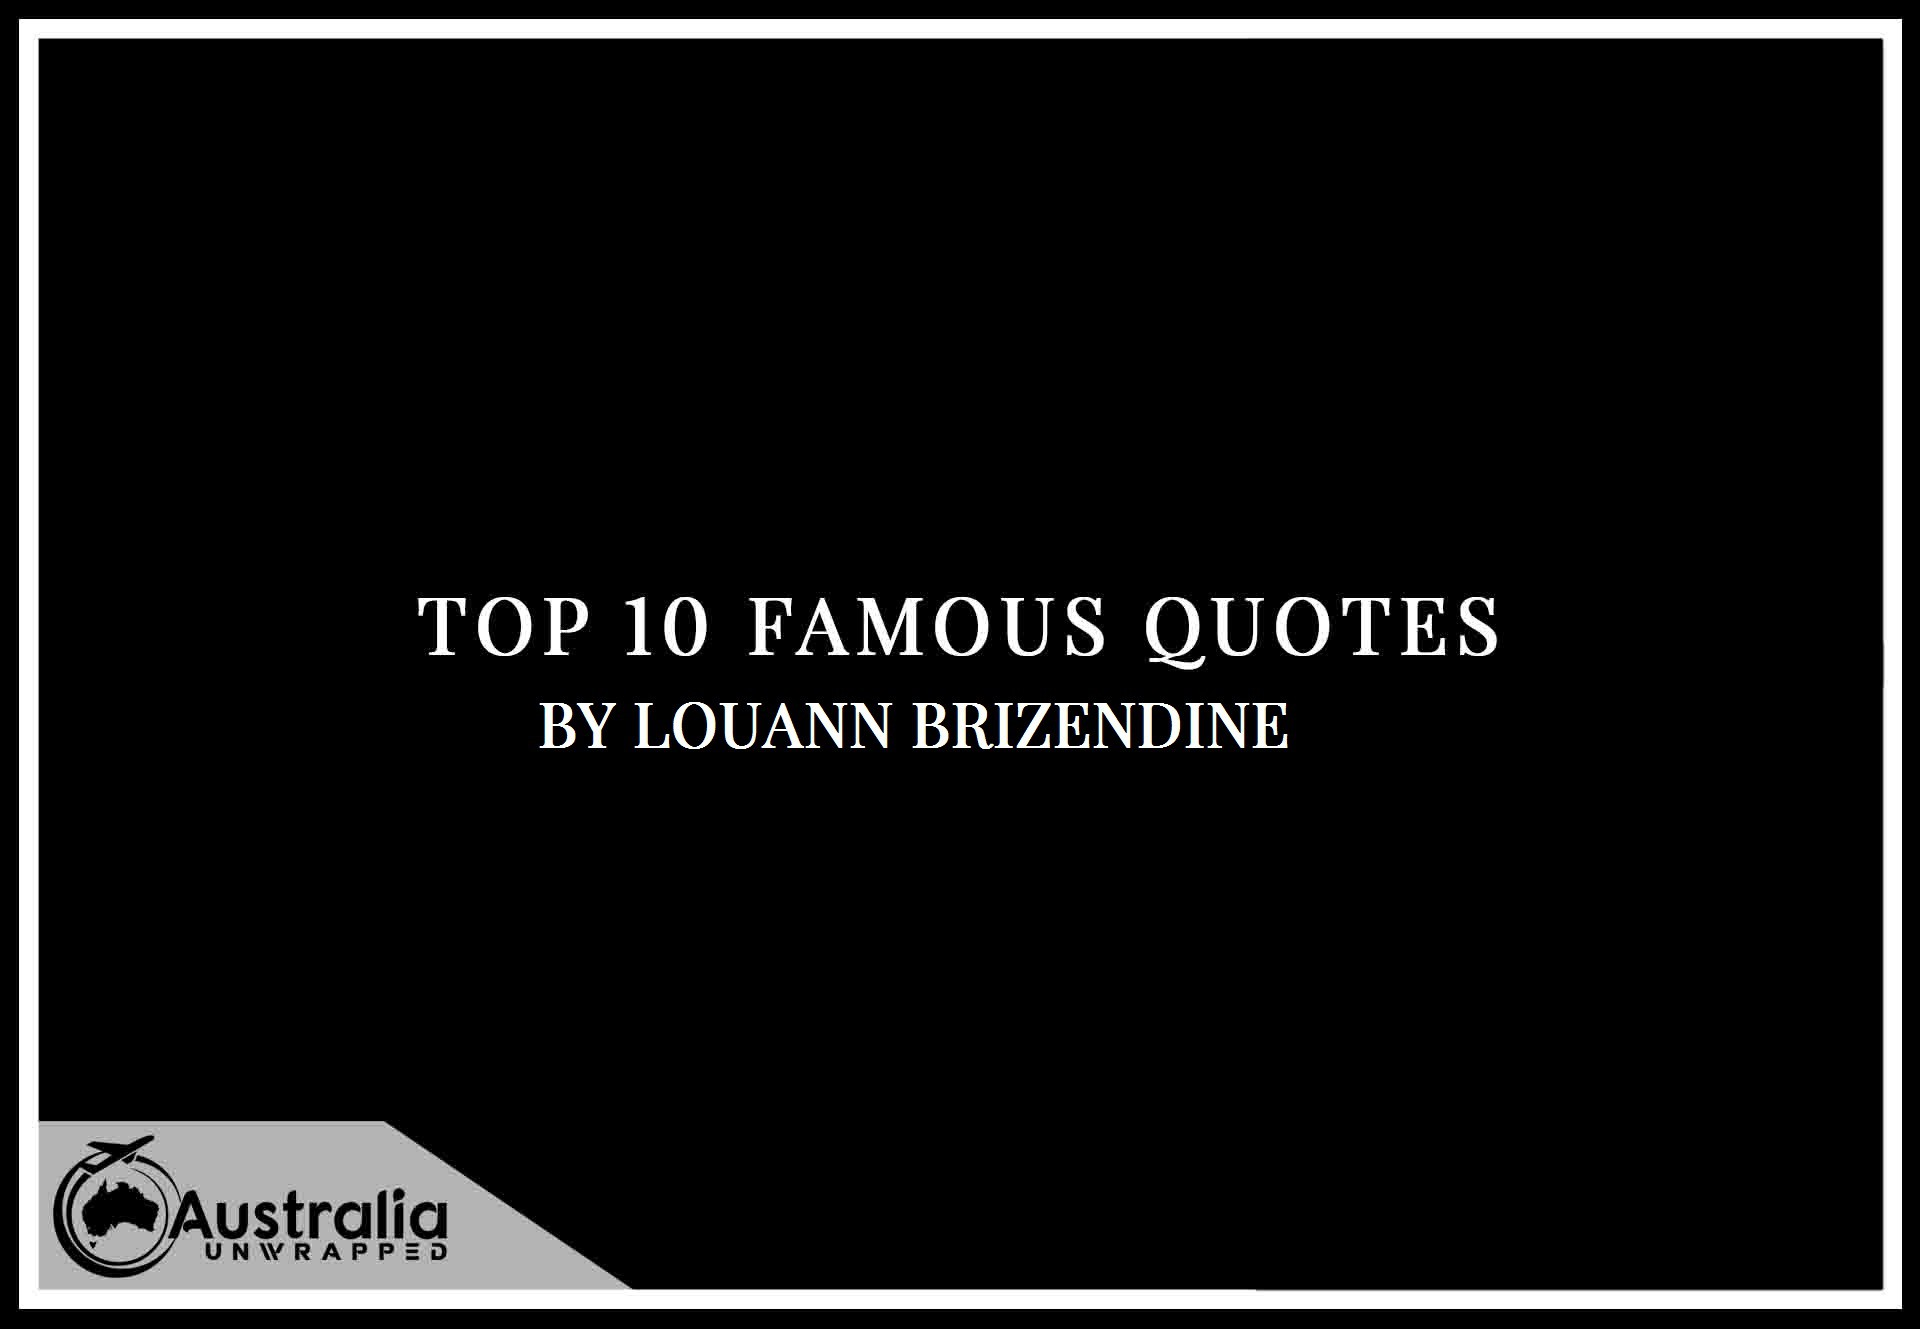 Louann Brizendine's Top 10 Popular and Famous Quotes